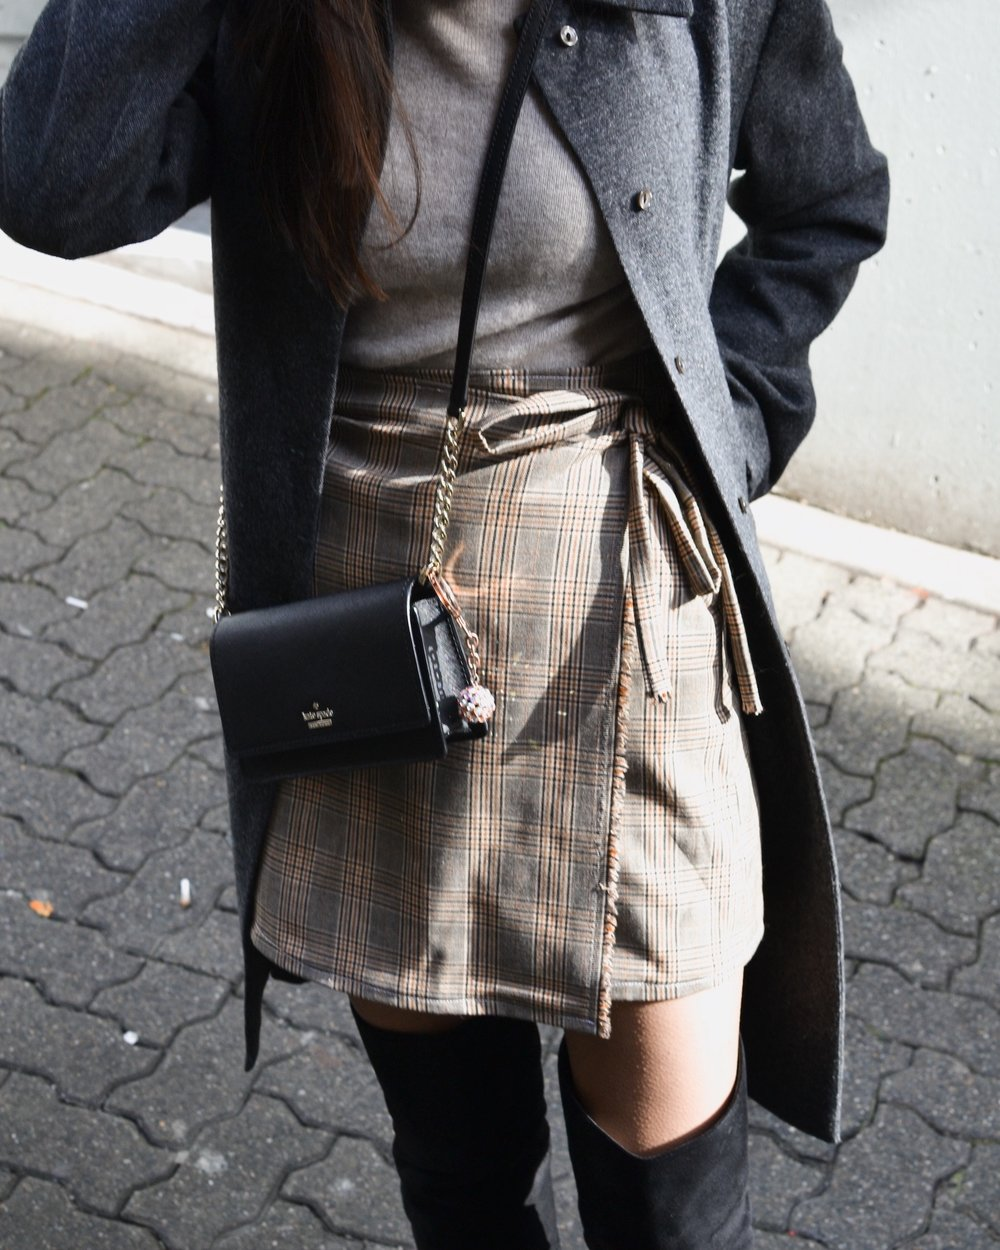 Handmade plaid skirt OOTD // A Week Of Empowered Outfits With Cat Chiang From Restitchstance on The Good Trade